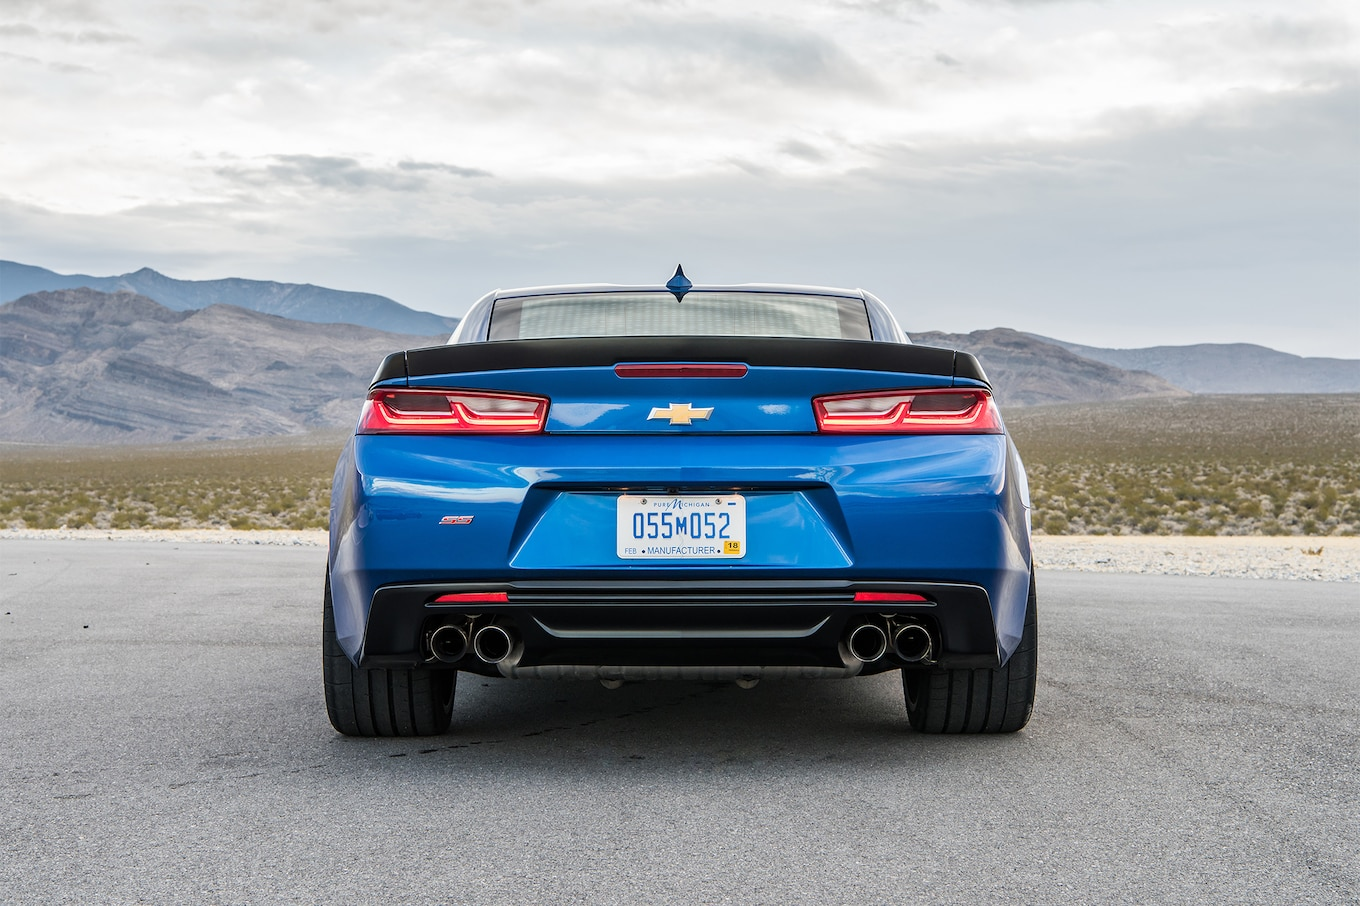 Cruze Car Hd Wallpaper 2017 Chevrolet Camaro Ss 1le Rear View 02 Motortrend